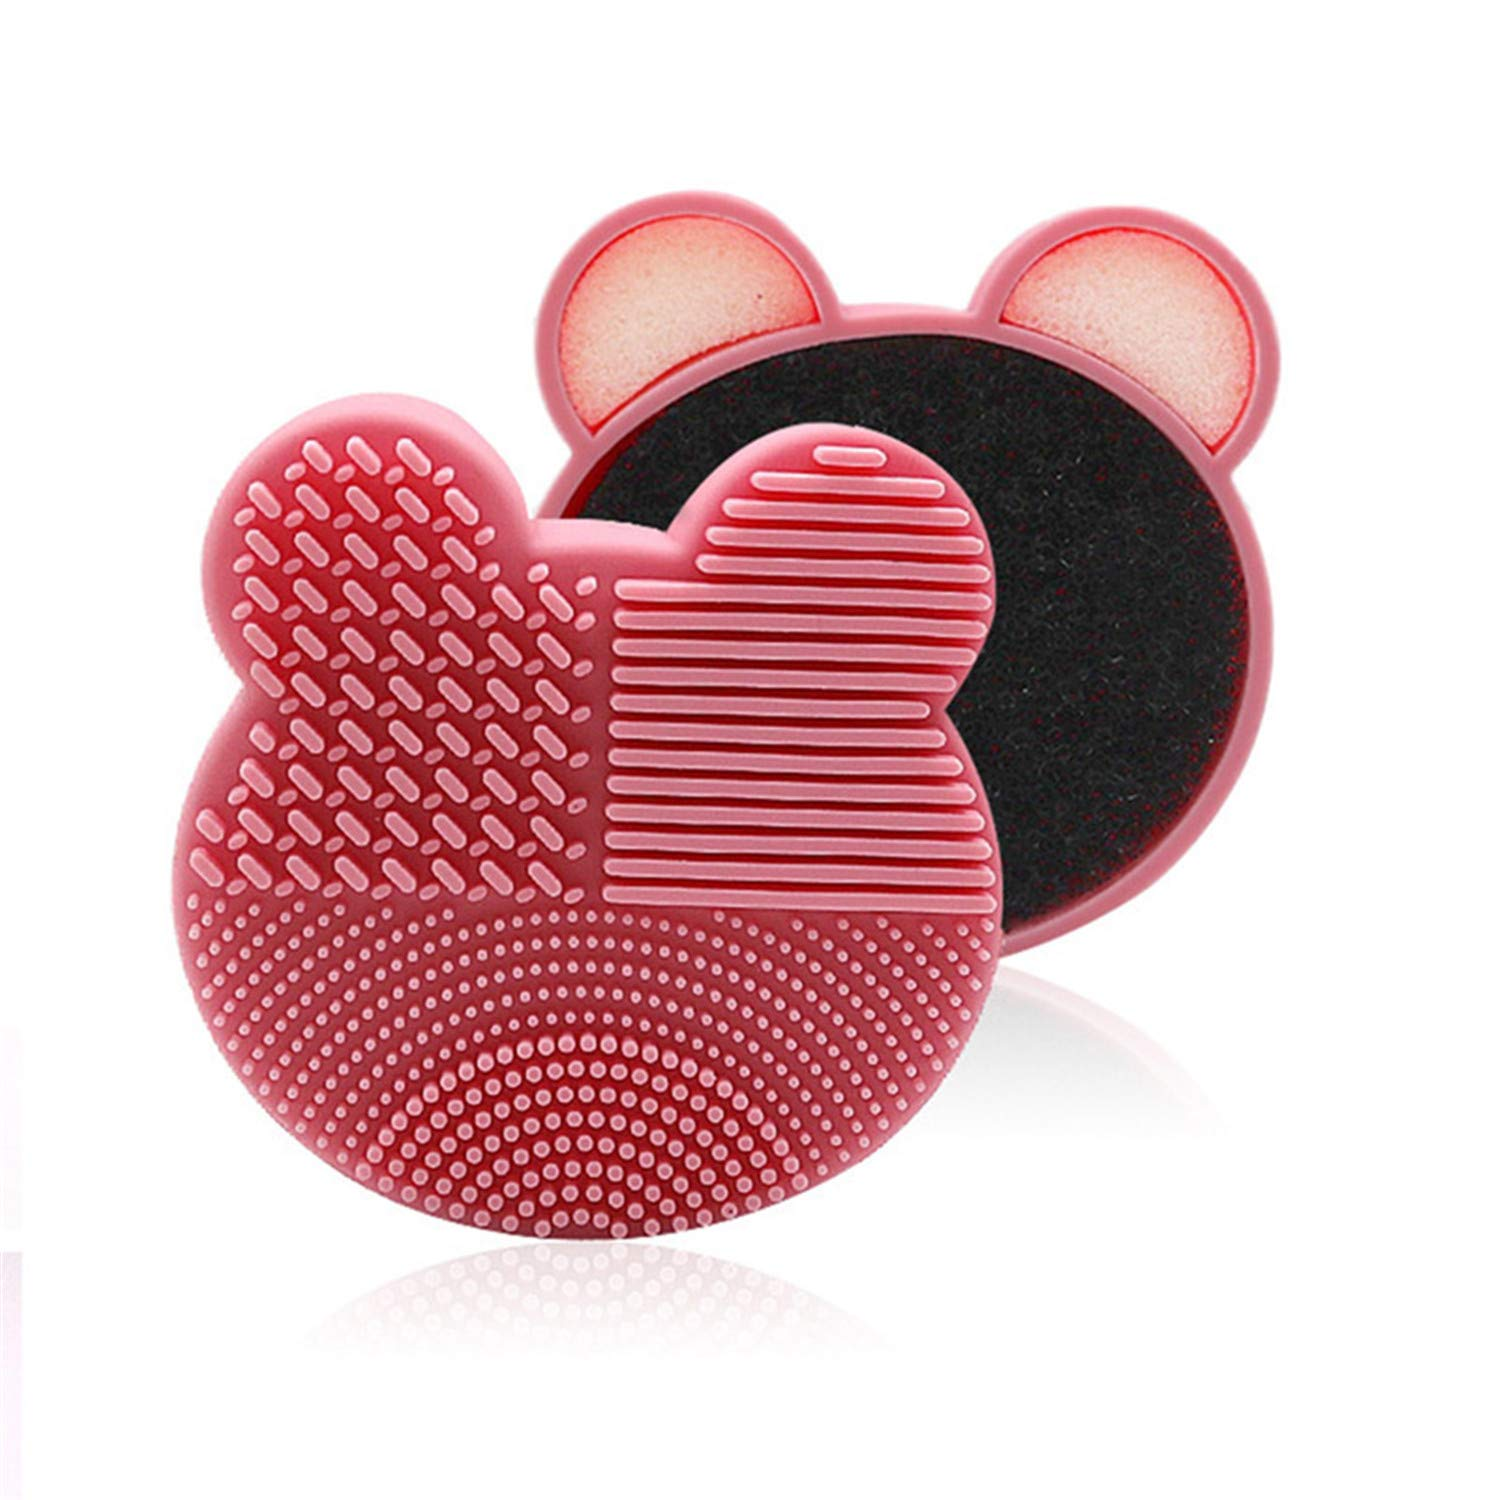 JYT Factory outlet GROUP Lovely Bear Makeup Brush Pad Cle Max 44% OFF Cleaner Washing